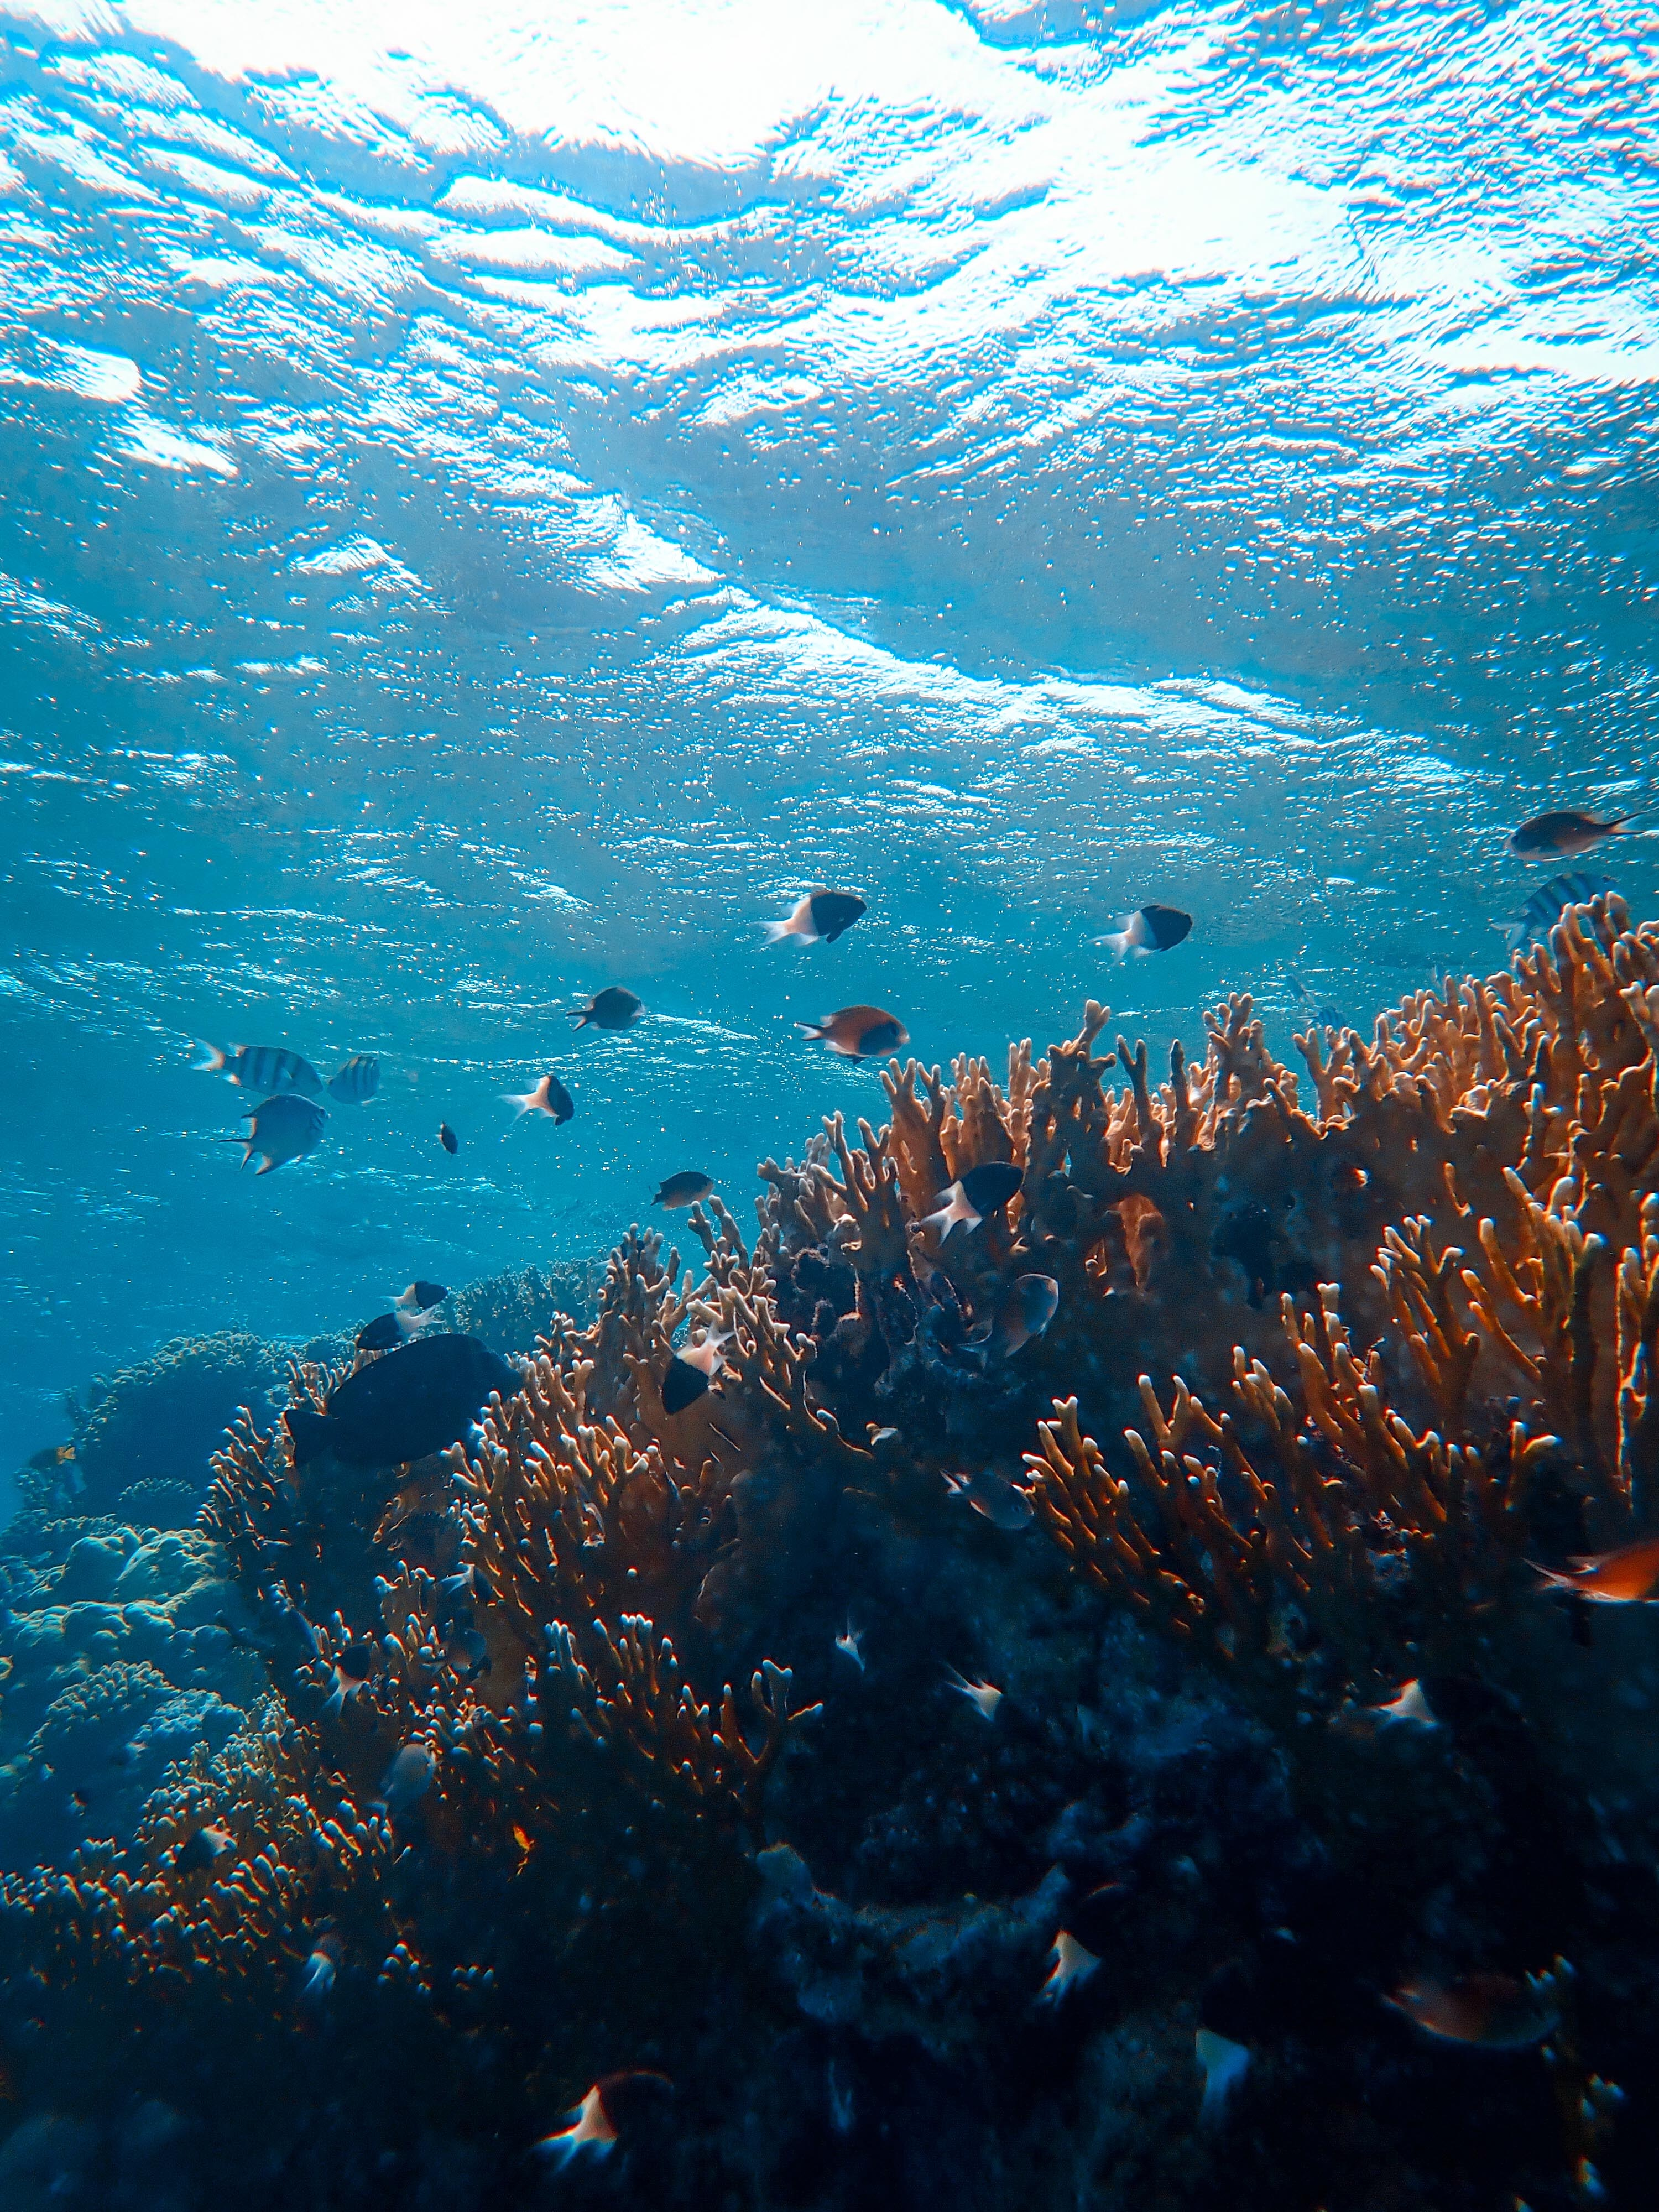 62620 download wallpaper Nature, Underwater World, Ocean, Seaweed, Algae, Fishes, Coral screensavers and pictures for free